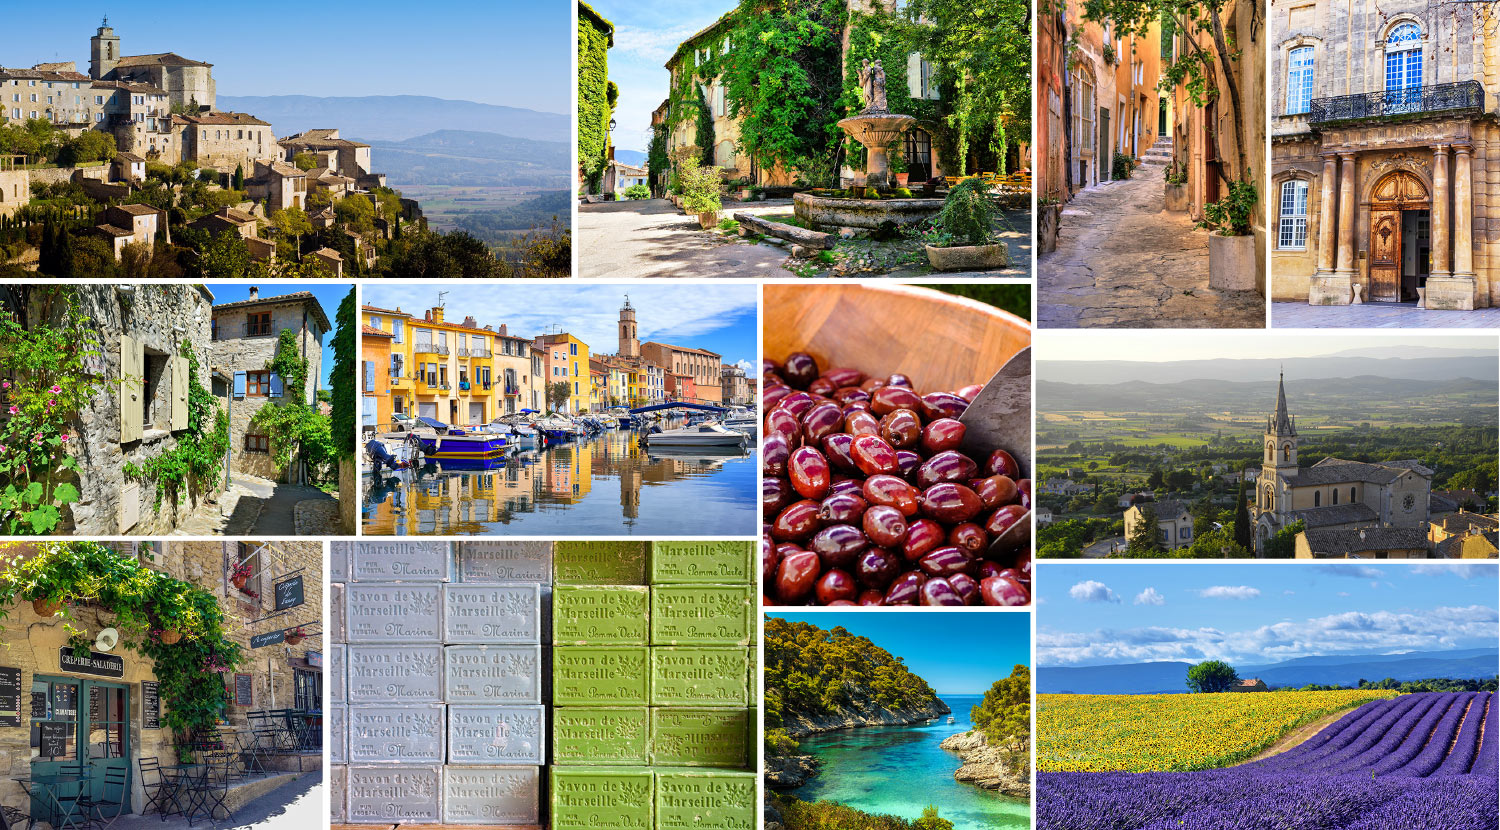 Collage if images from Provence France